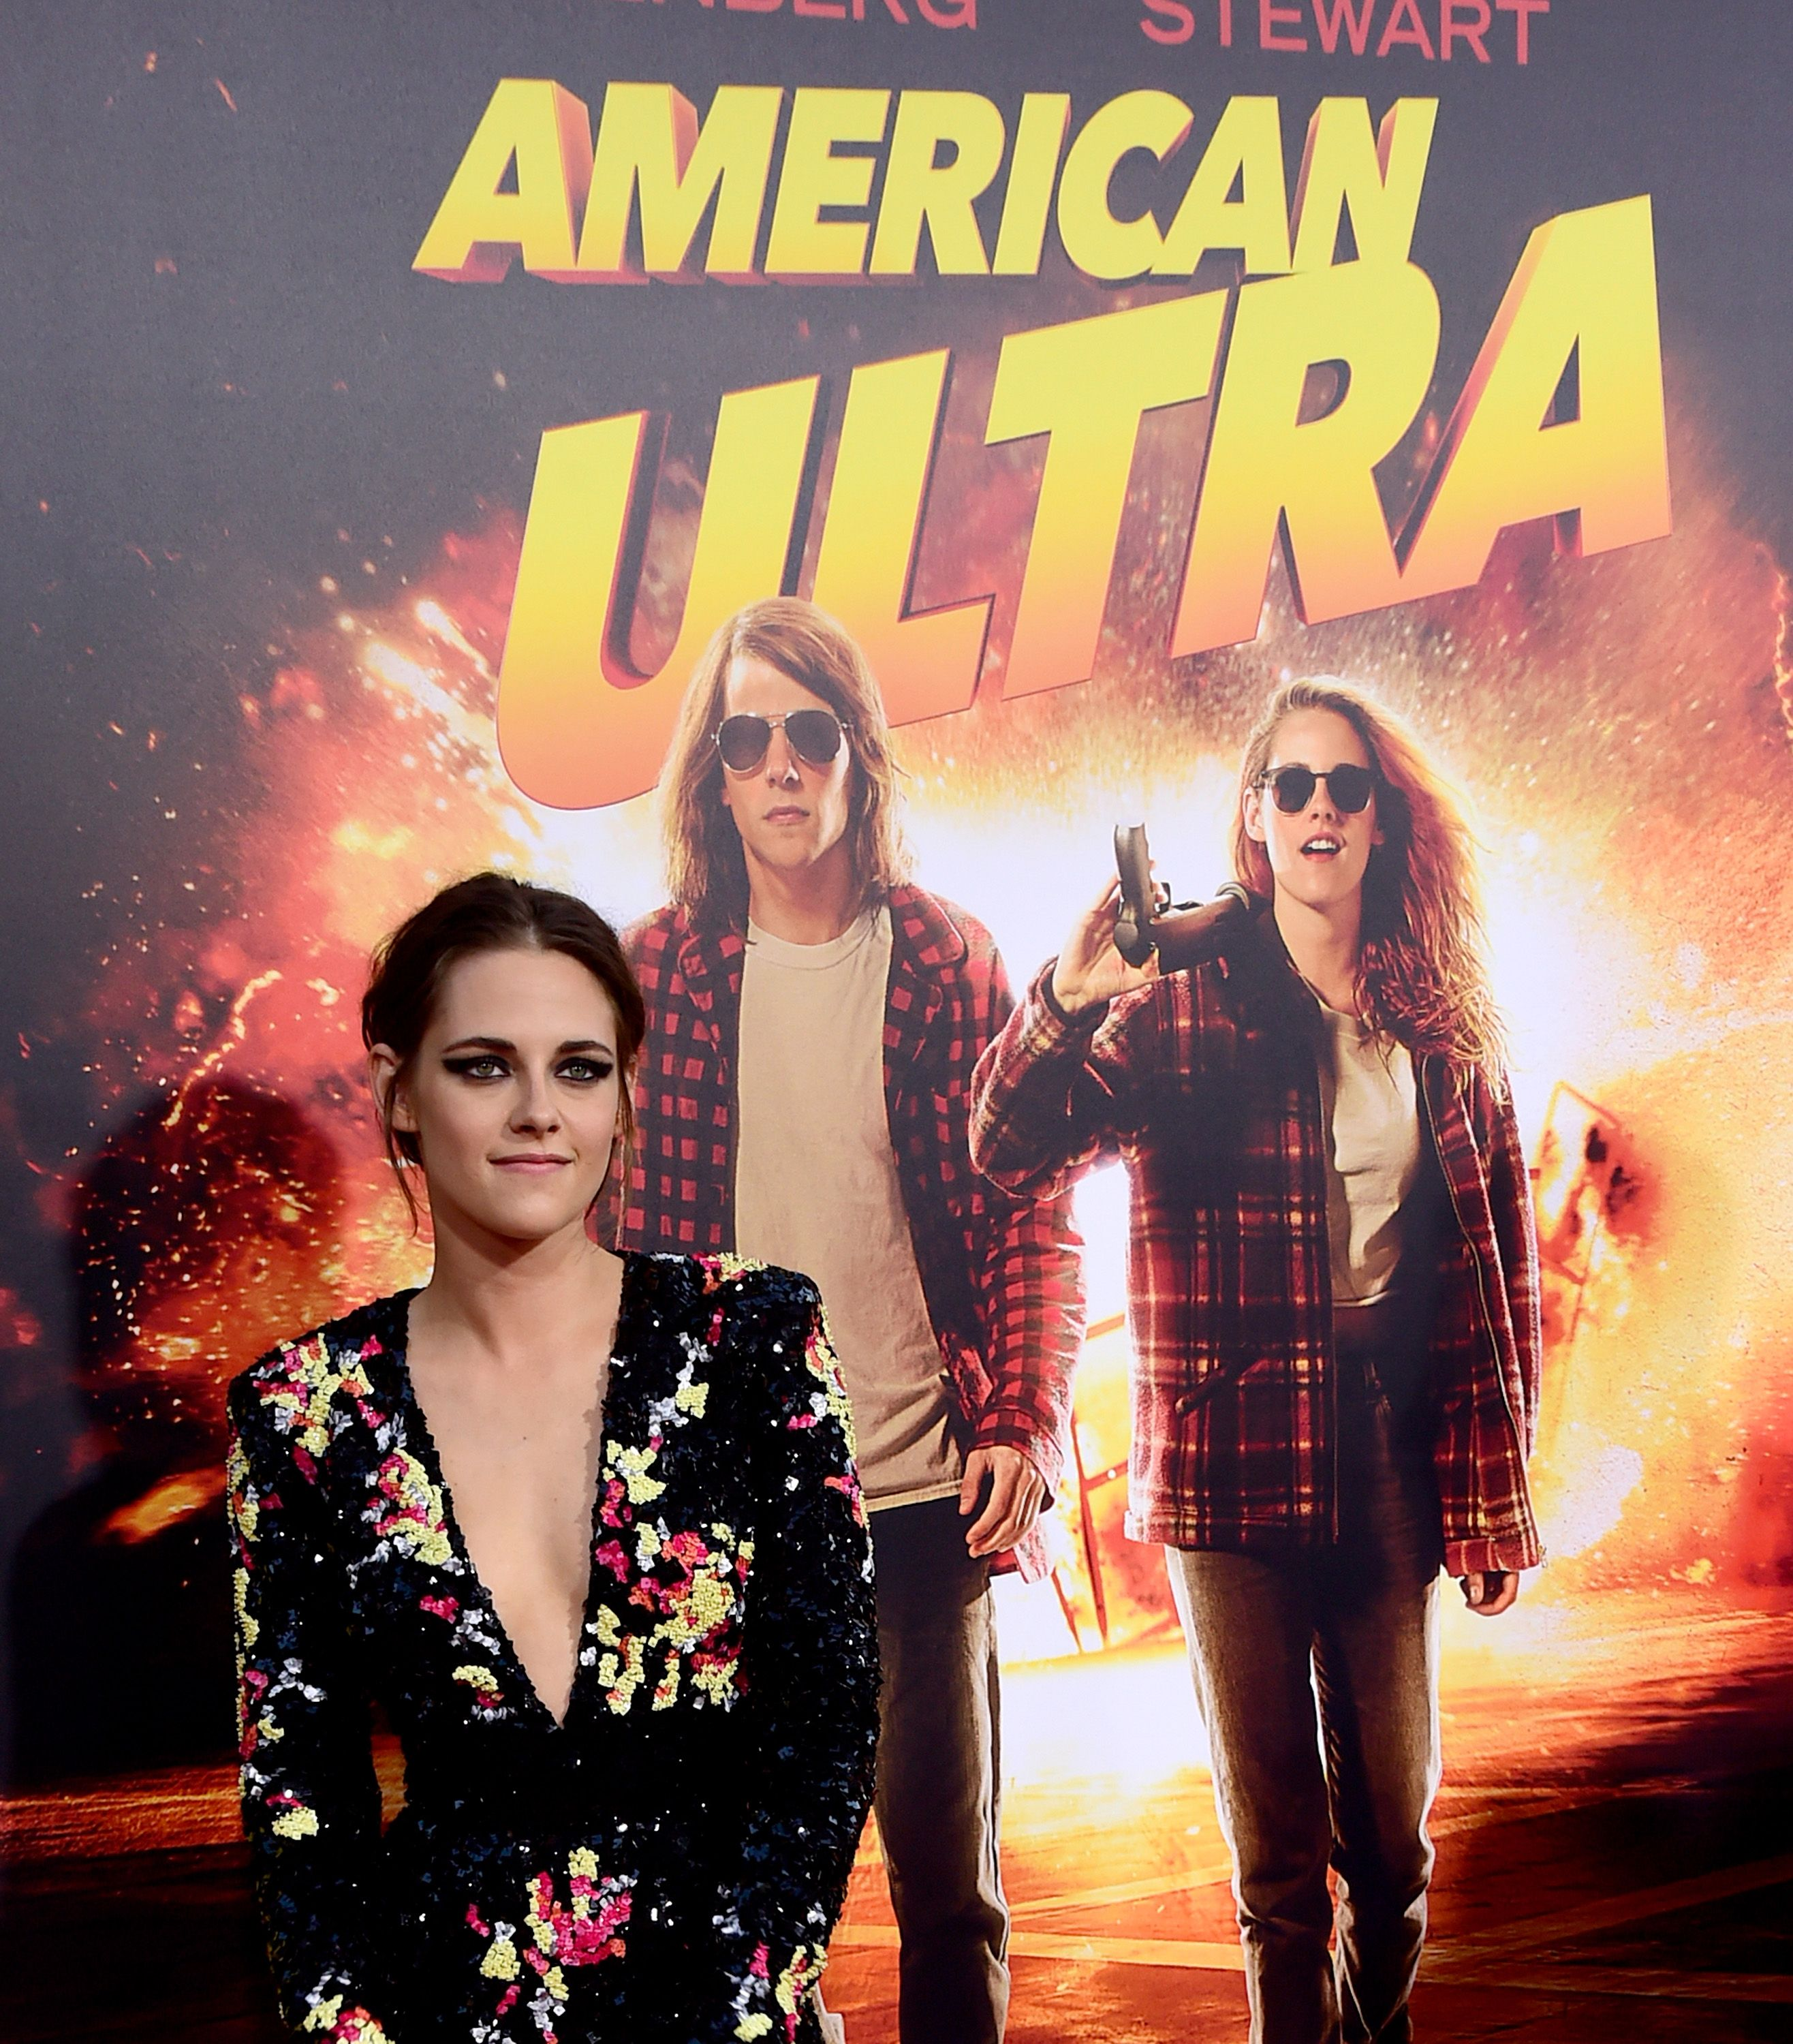 Kristen Stewart stands in front of an 'American Ultra' movie poster.